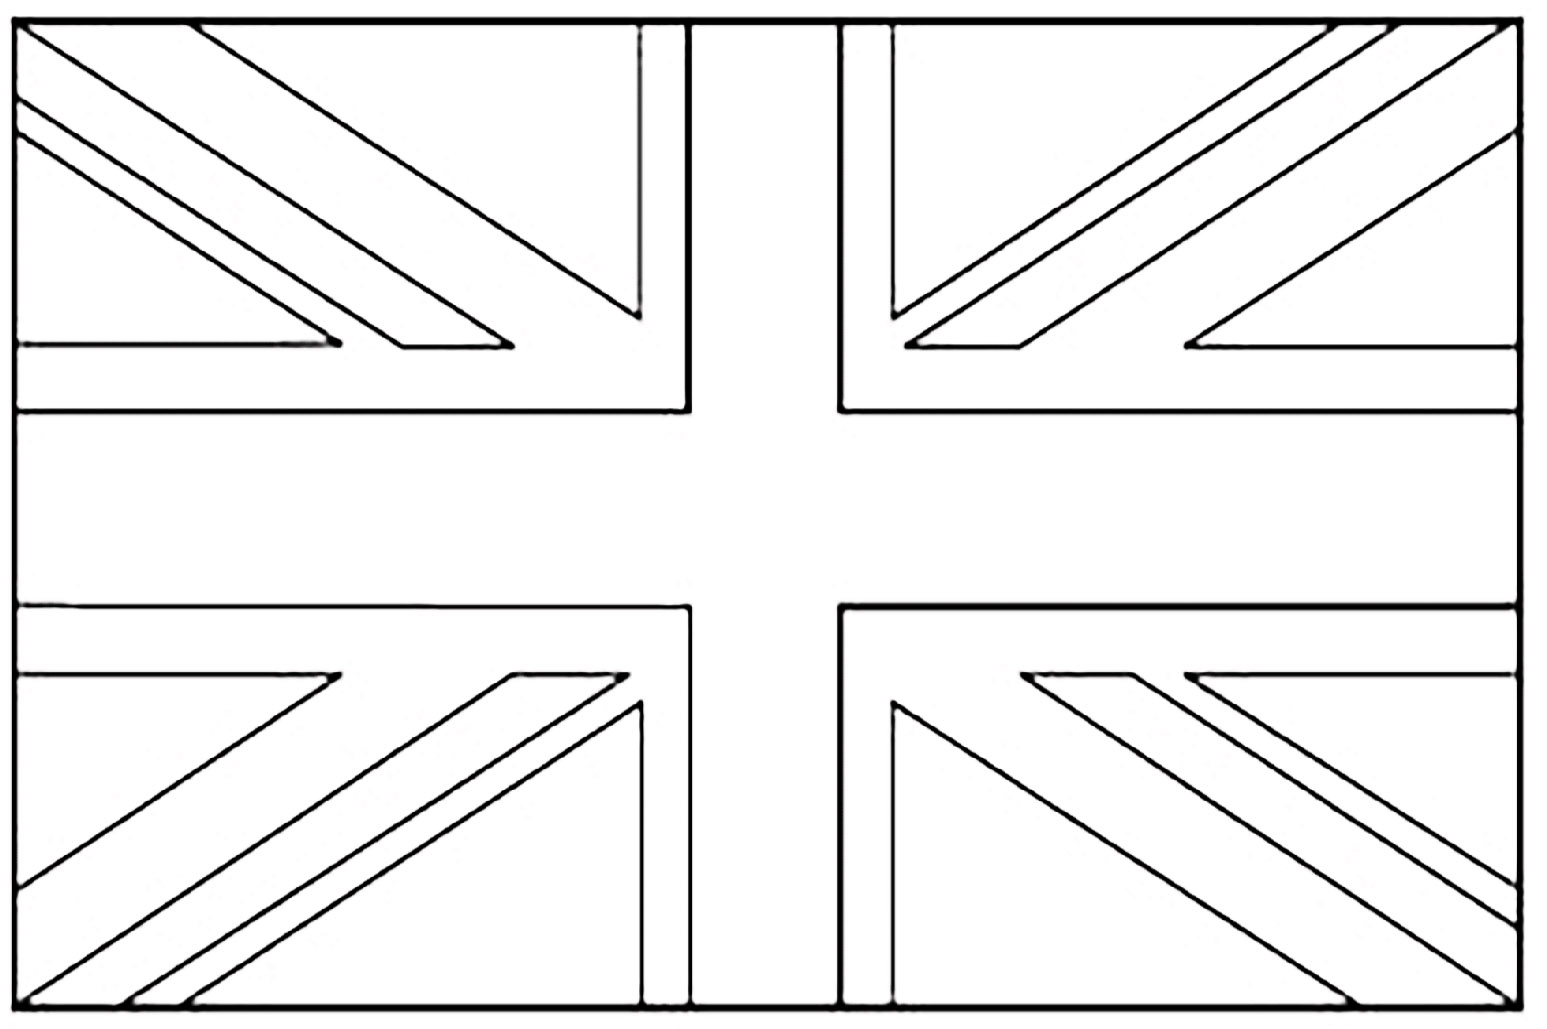 united kingdom union jack flags coloring pages for kids to print